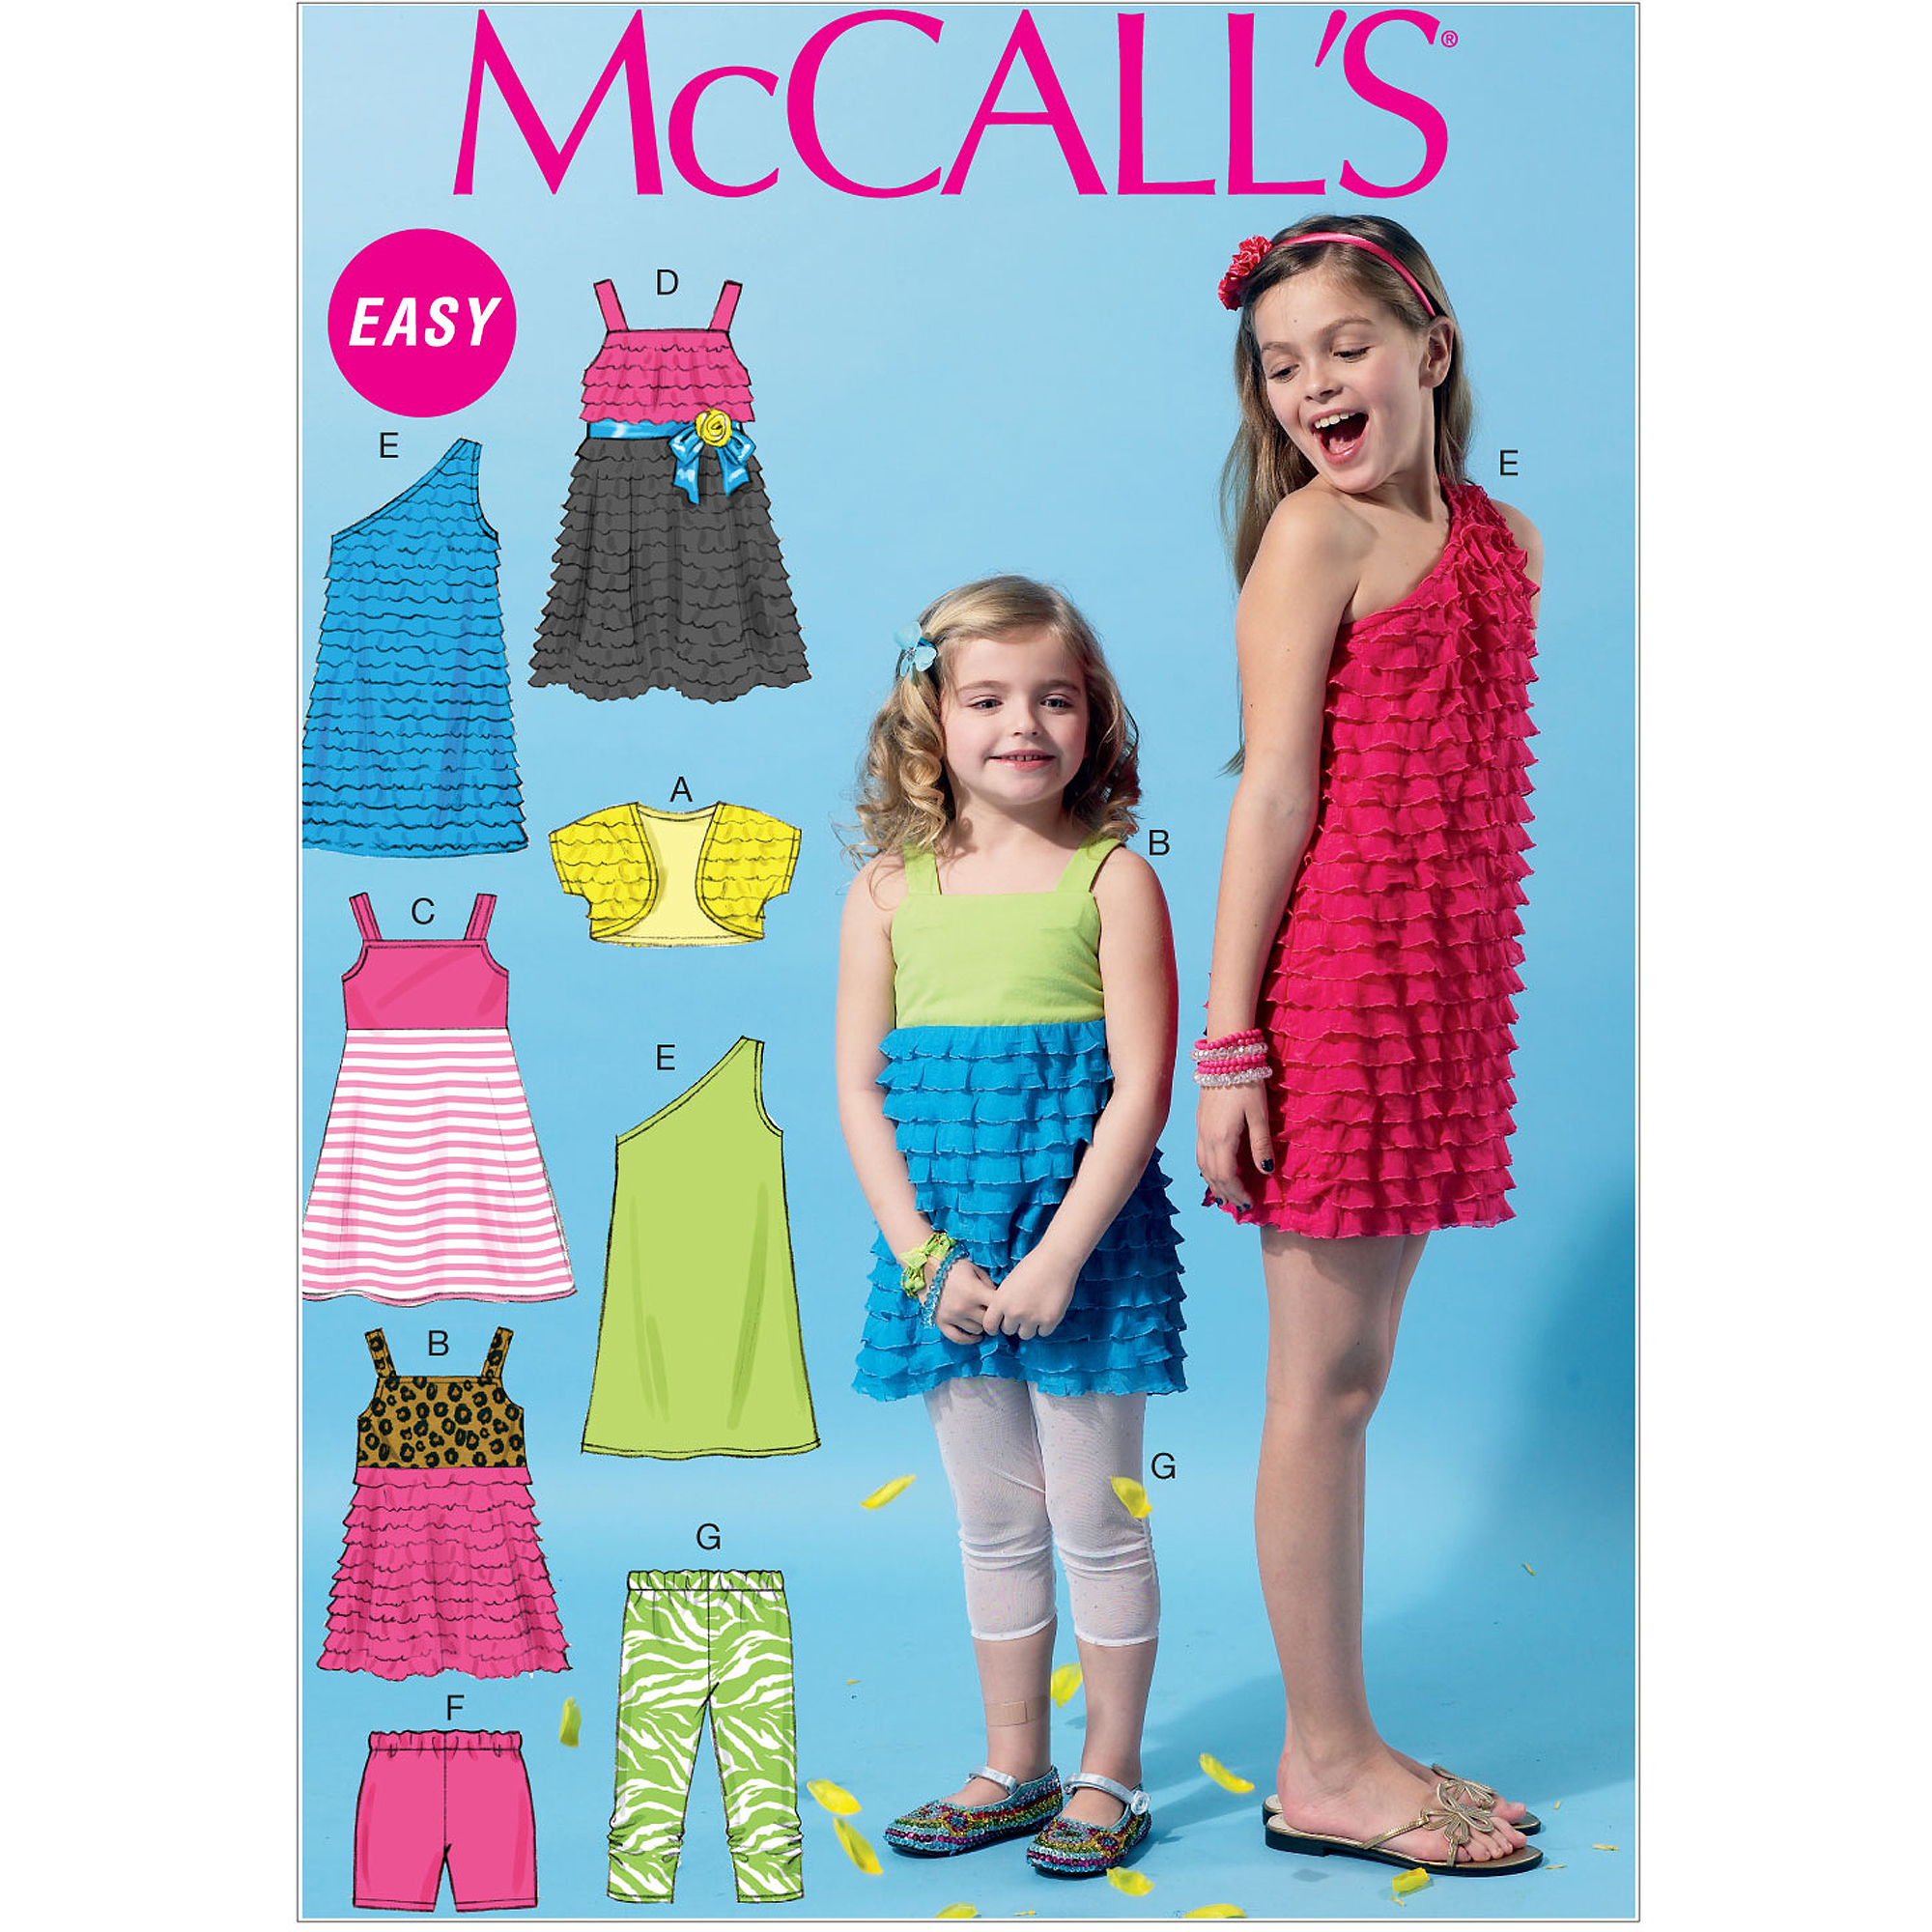 McCall's Pattern Children's and Girls' Shrug, Top, Dresses, Shorts and Leggings, CHJ (7, 8, 10, 12, 14)